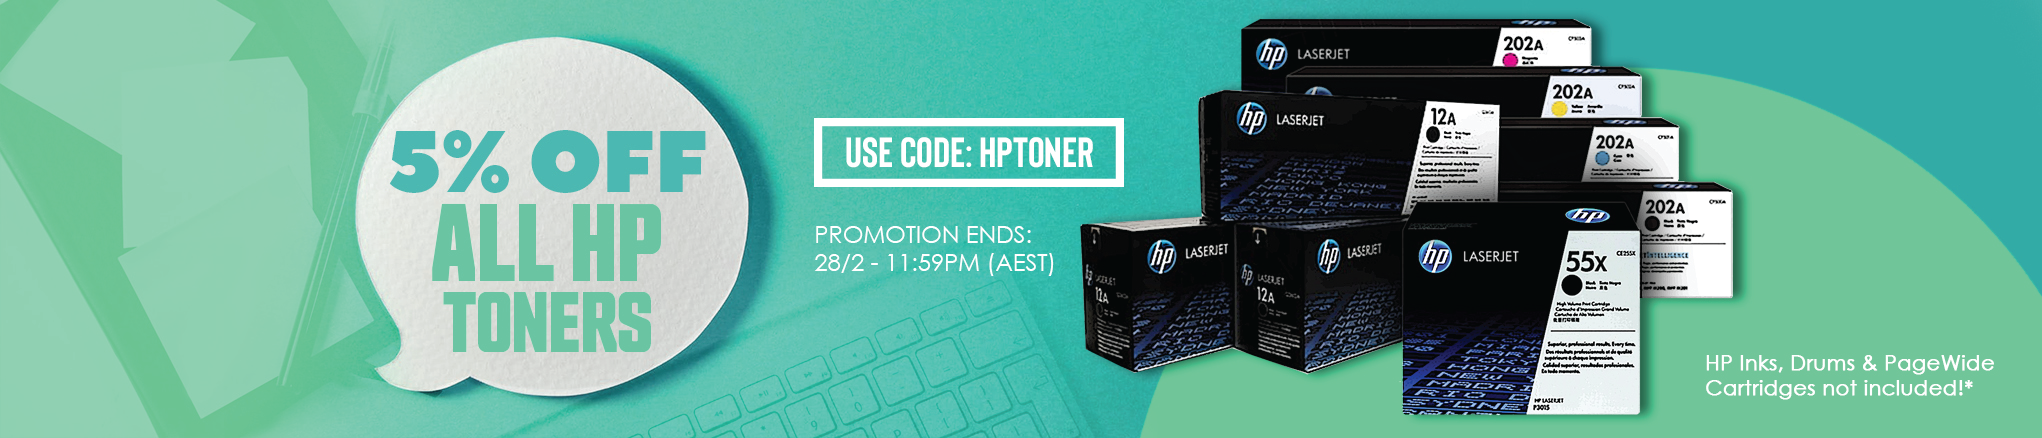 5% off all HP toners